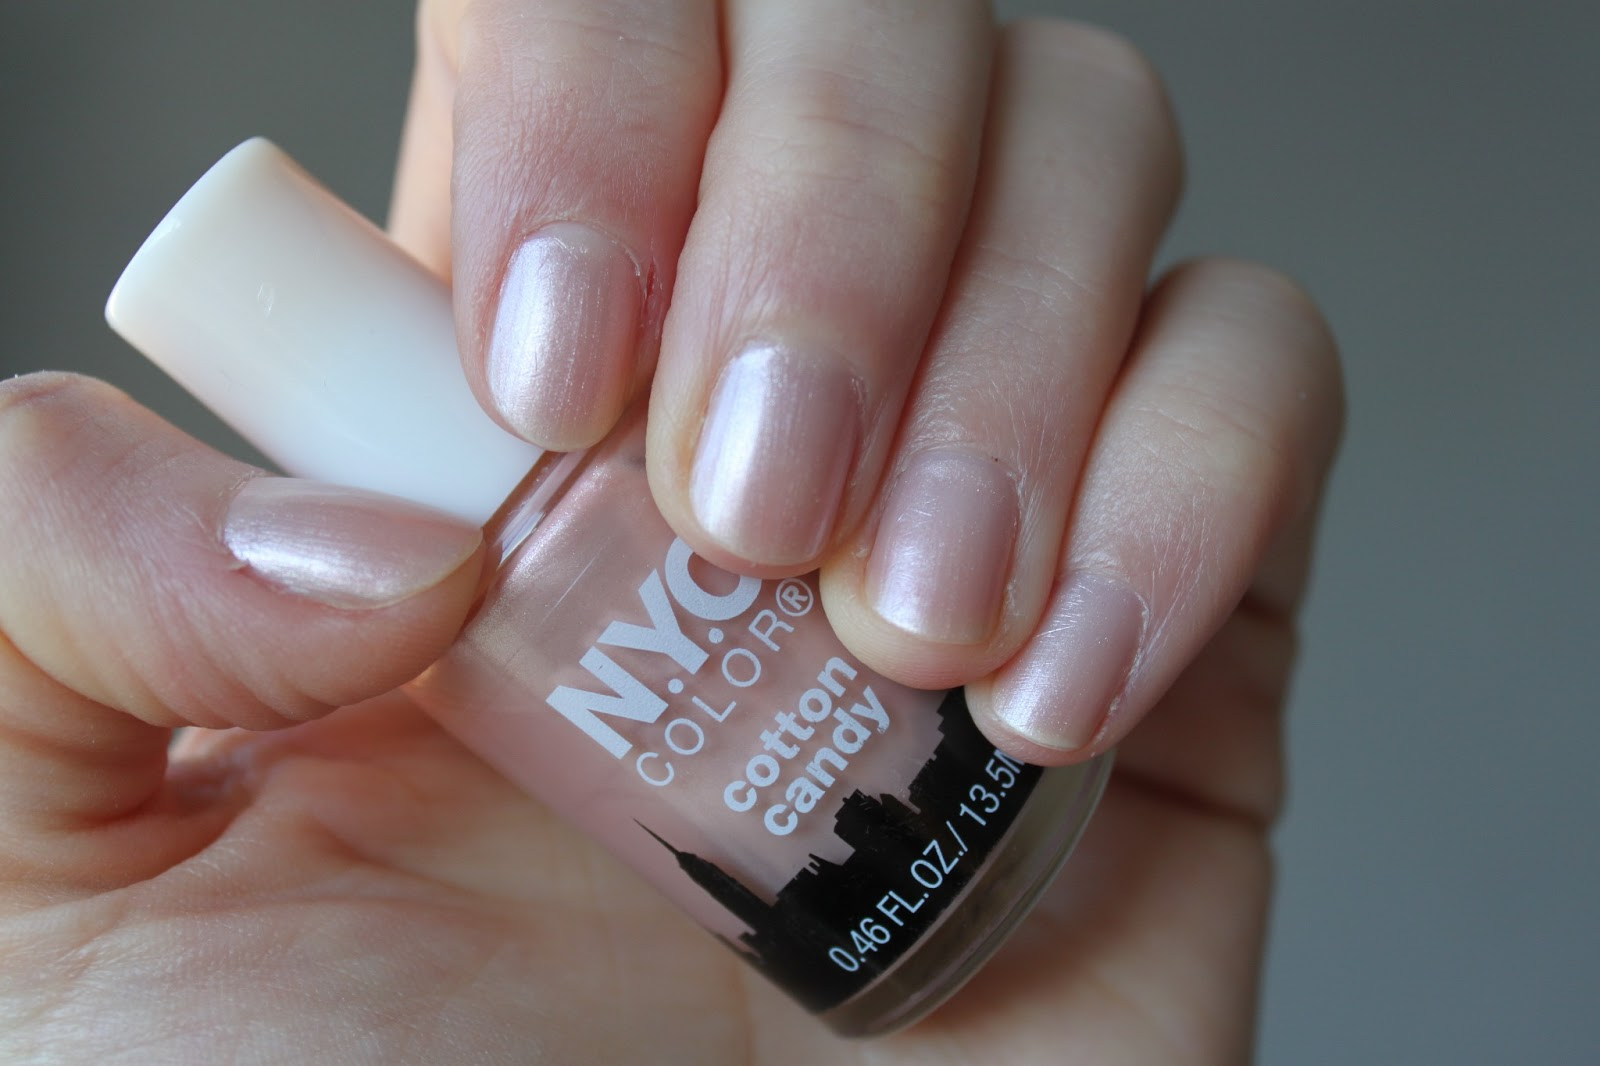 Australian Beauty Review: Nail polish of the week: NYC Cotton Candy